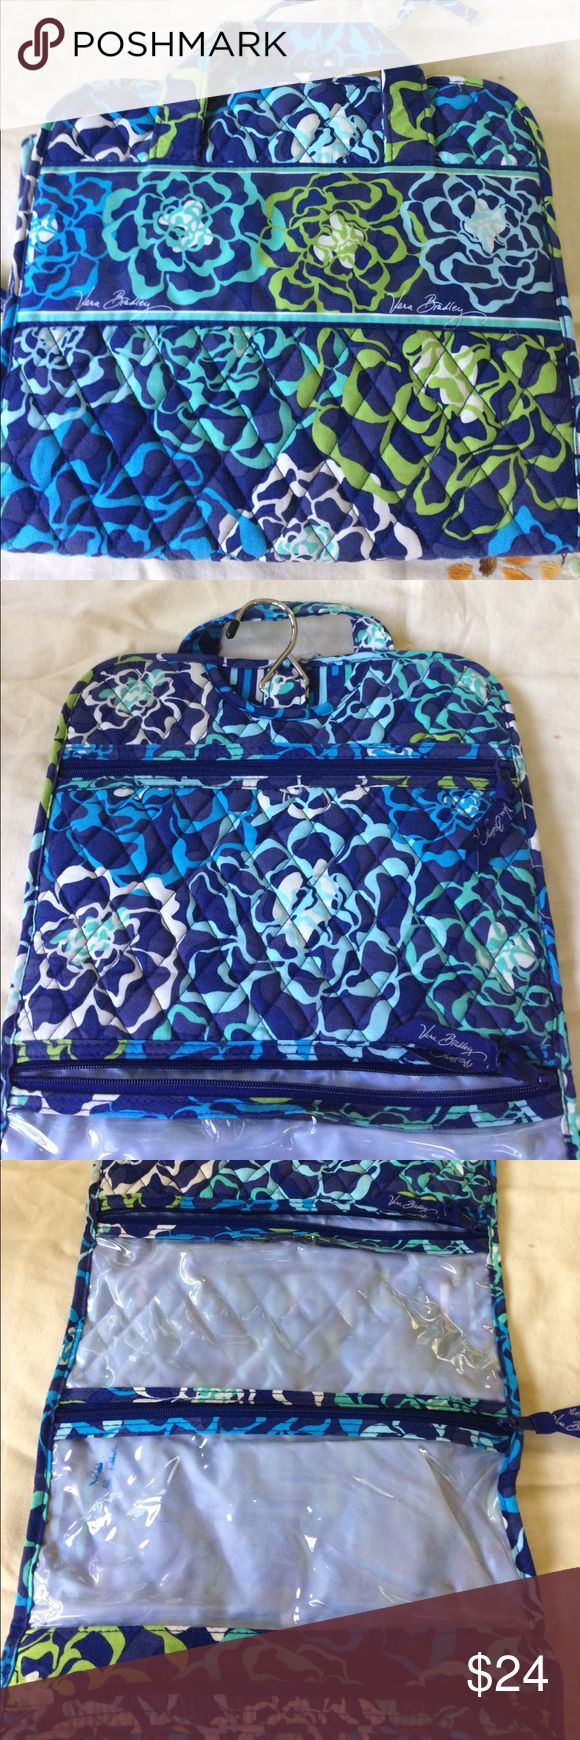 """Vera Bradley """"Catalina Blues"""" Toiletry Bag Four zipping compartment toiletry hanging bag. Display model in store so some minor fading but not noticeable. I used it twice. All zippers working great! Catalina Blues is a retired fabric from fall of 2015 Vera Bradley Bags Cosmetic Bags & Cases"""